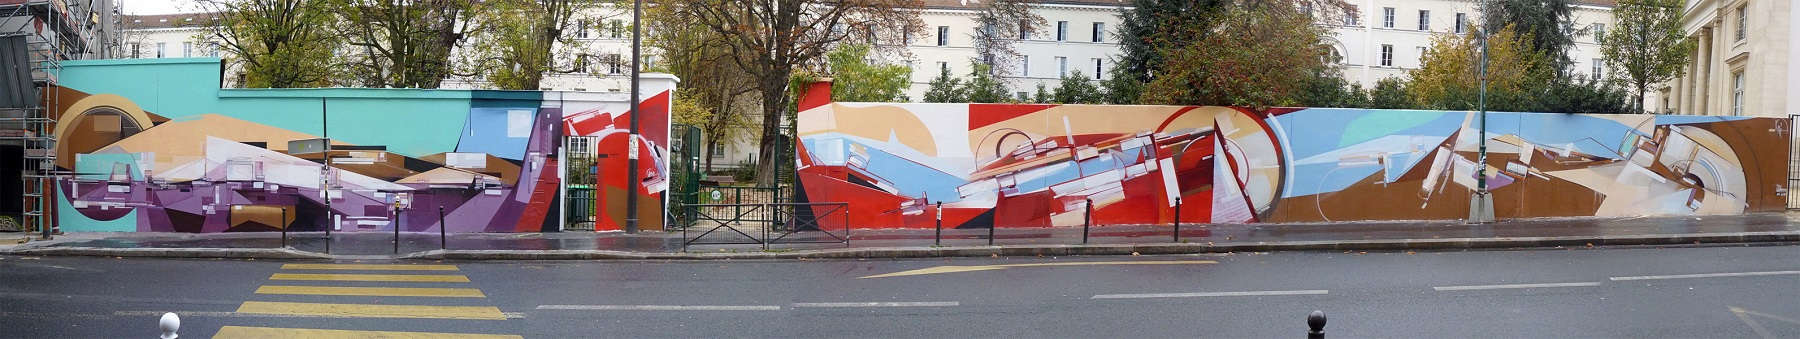 augustine-kofie-new-mural-in-paris-france-01